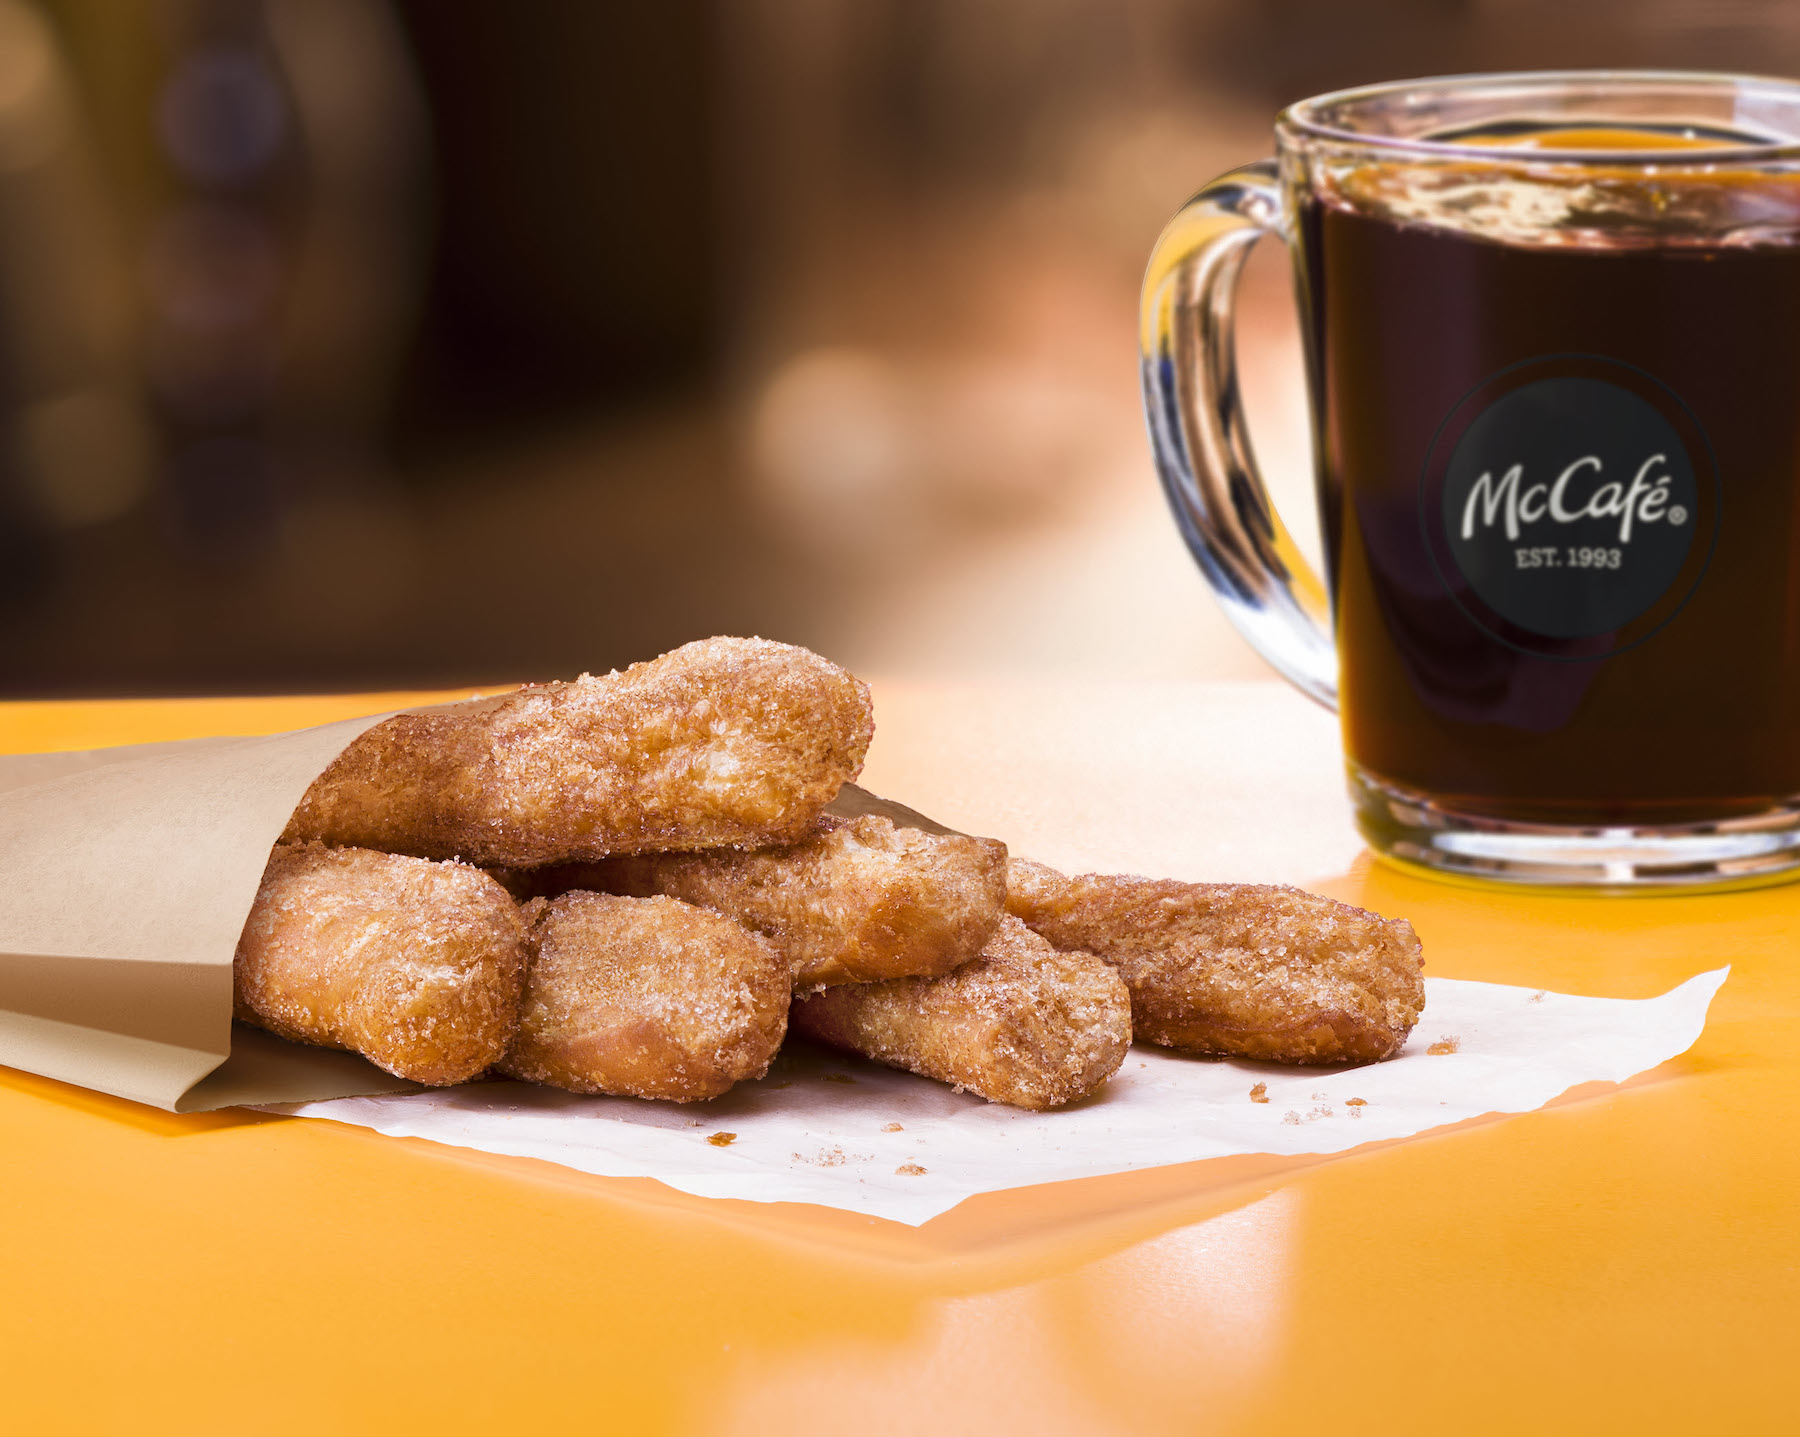 McDonalds reports strong sales thanks to donut sticks